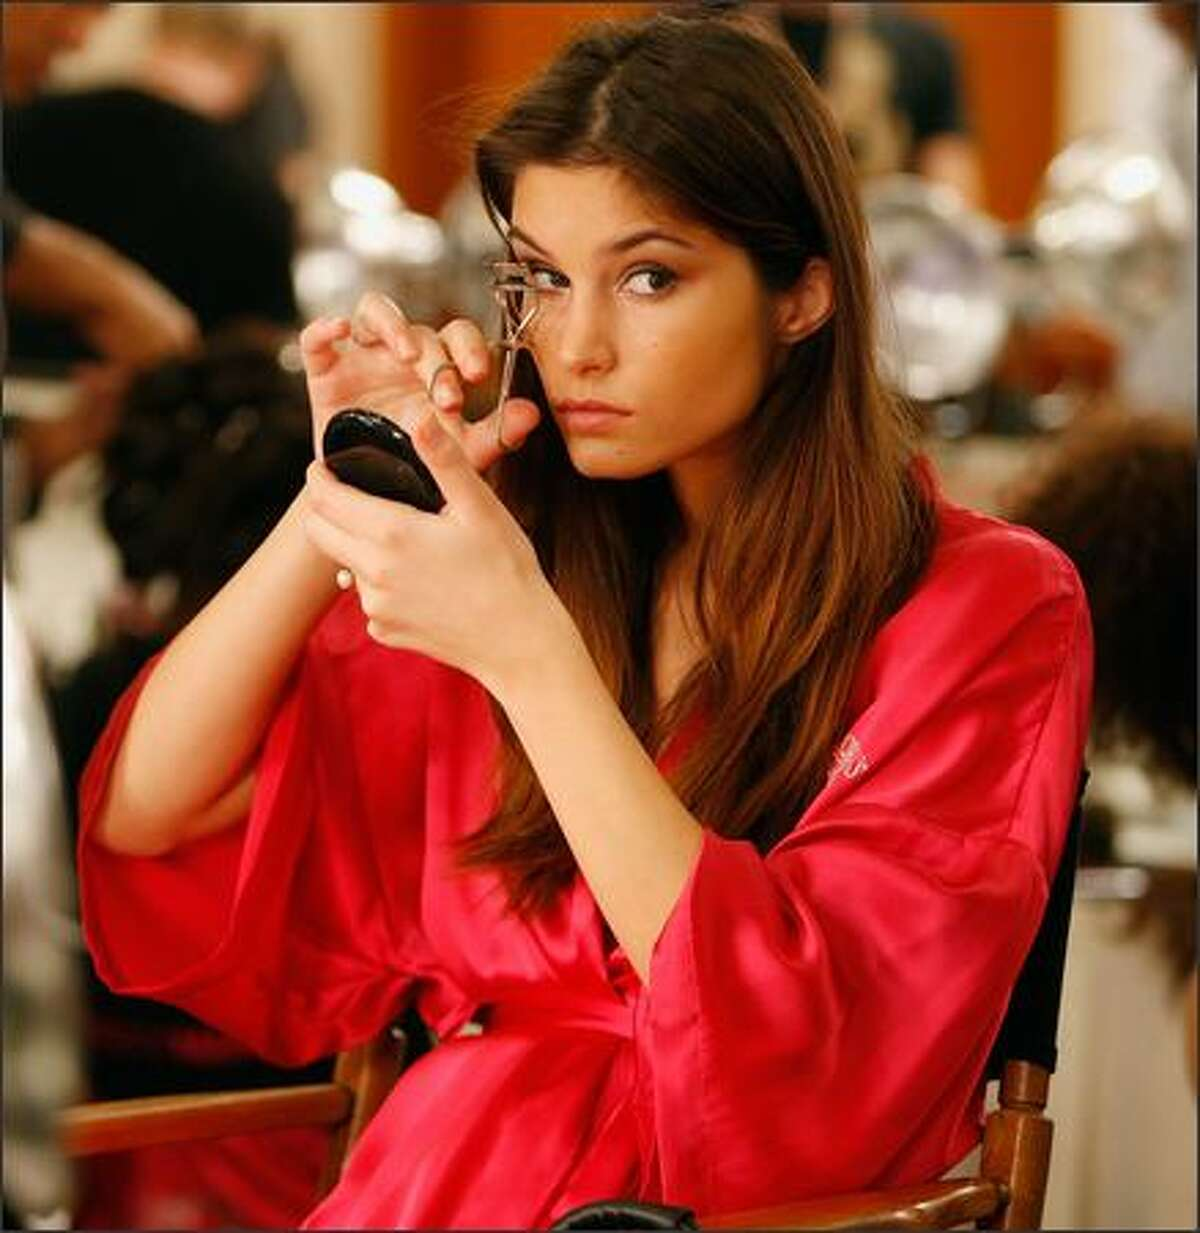 A model prepares backstage before the Victoria's Secret Fashion Show at the Renaissance Hotel in Hollywood, California.